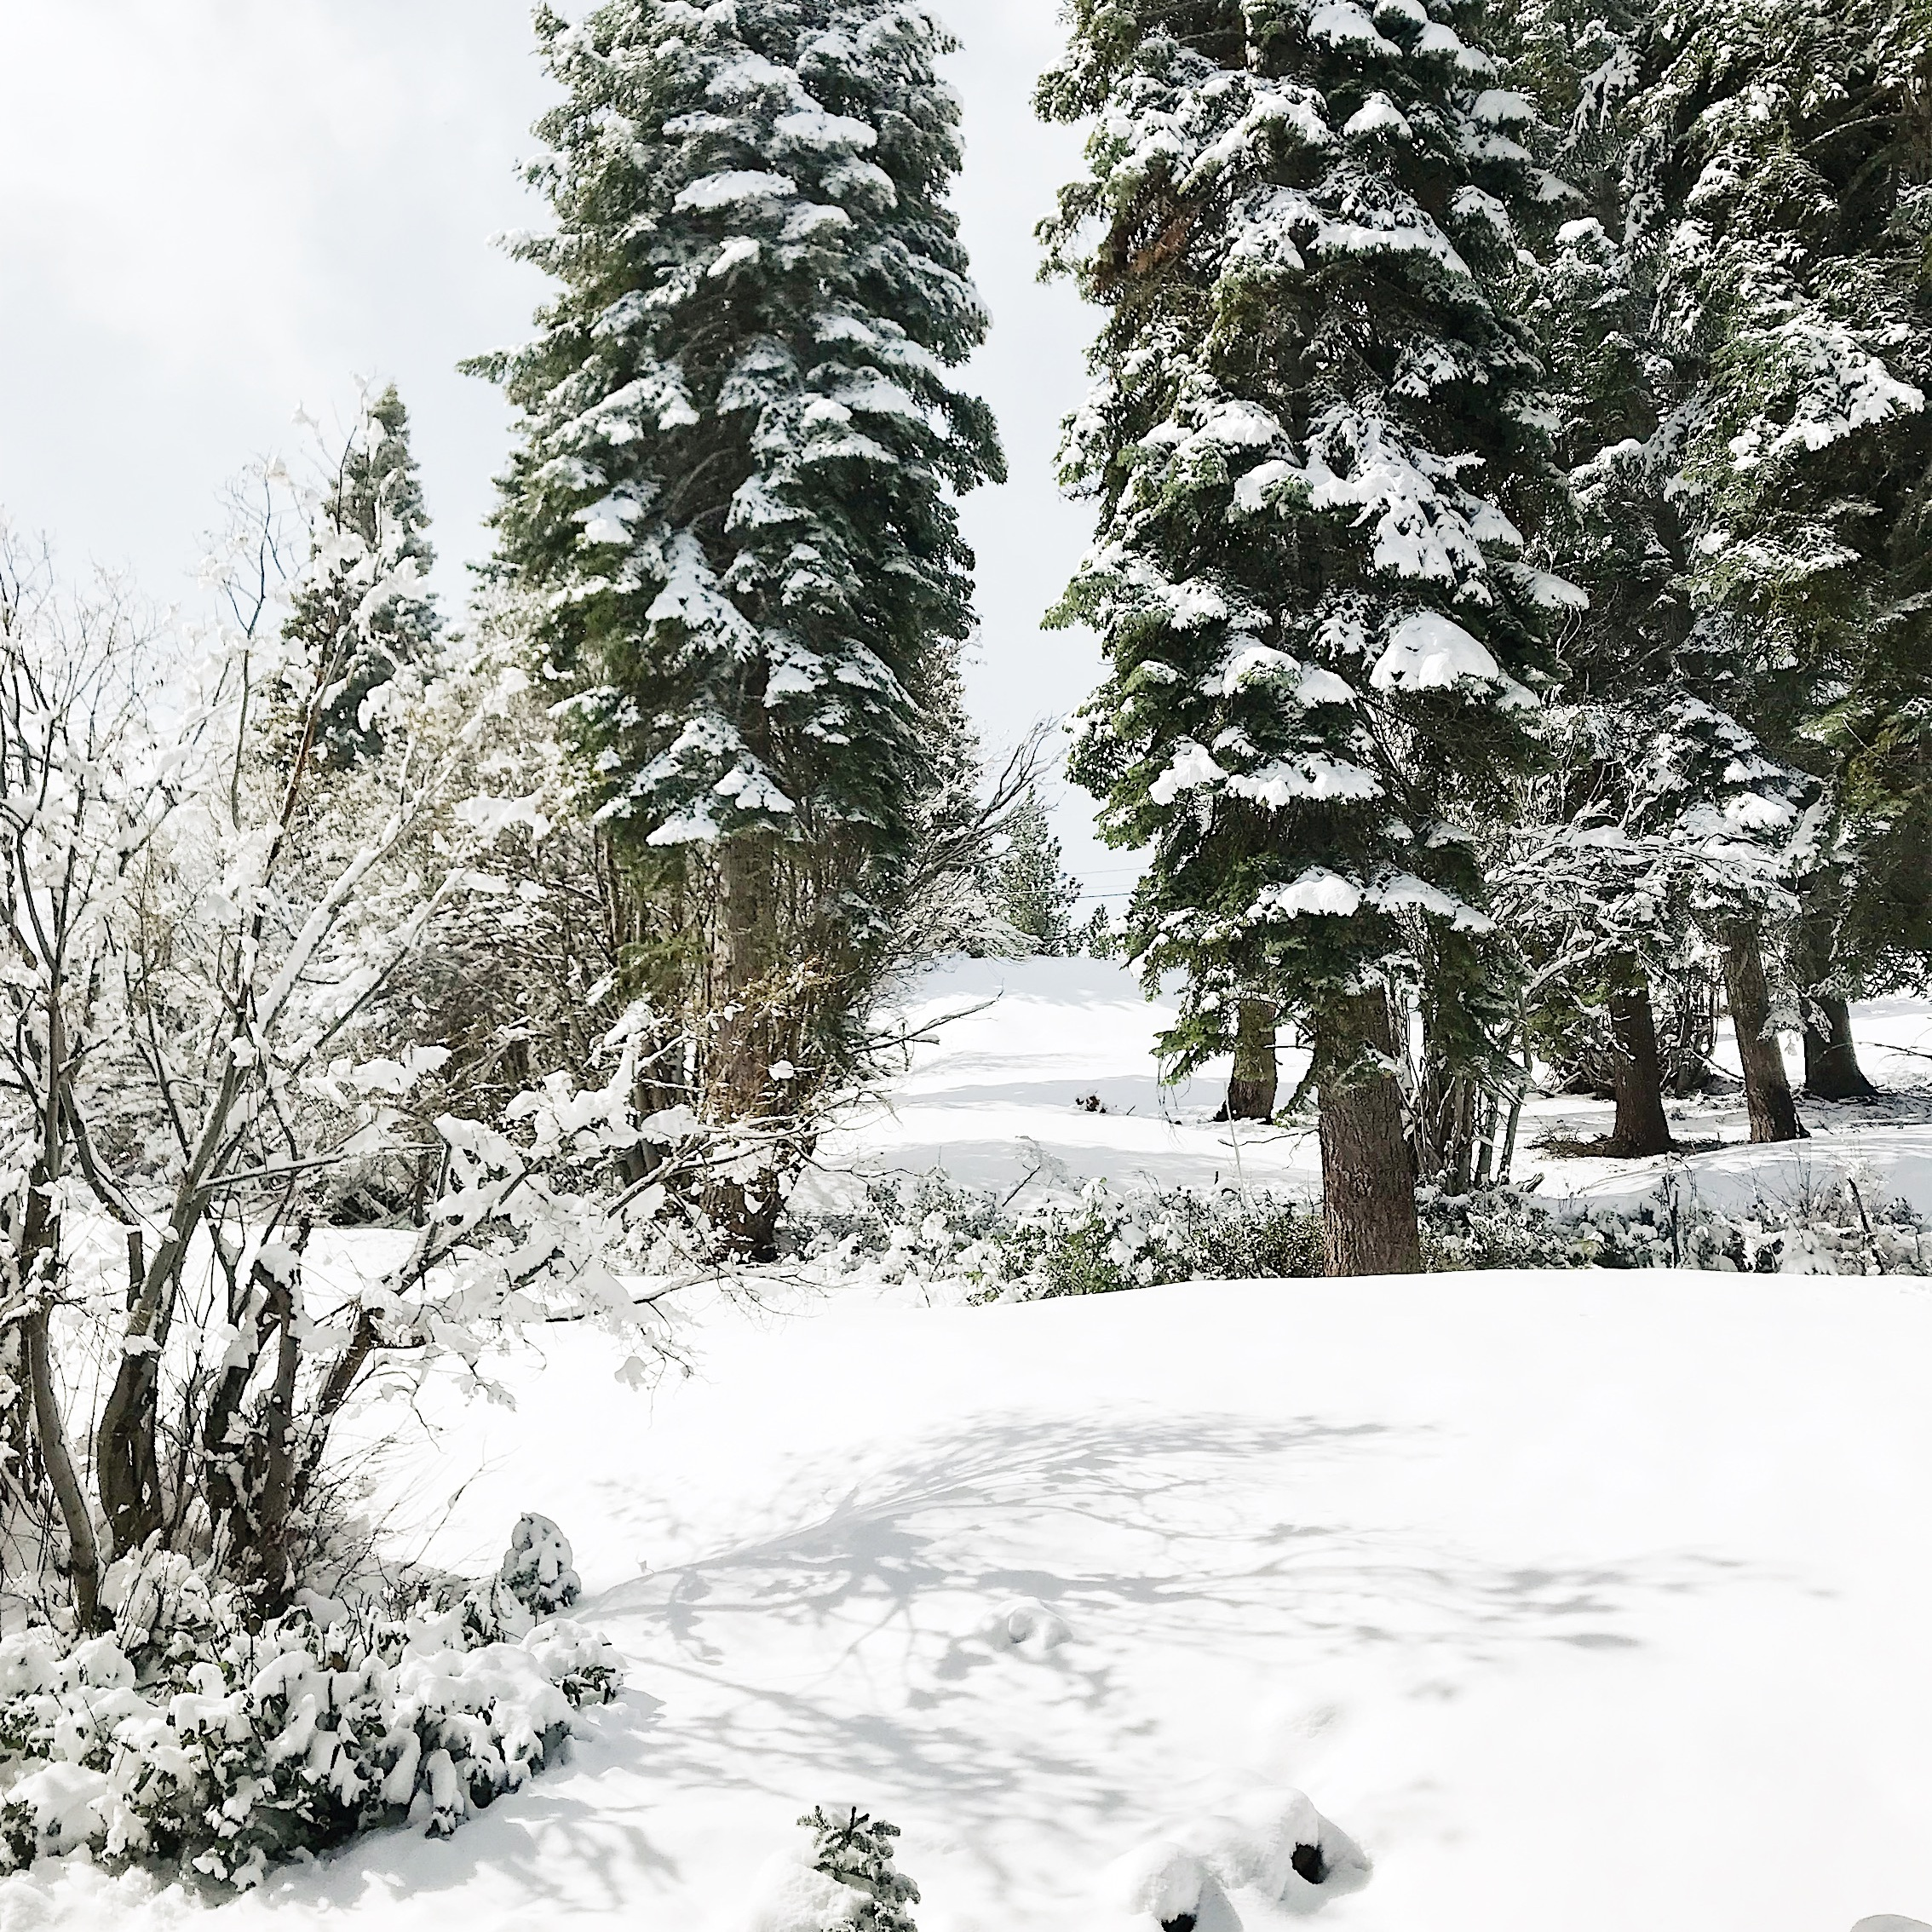 Photo taken May 19th in Tahoe Donner.